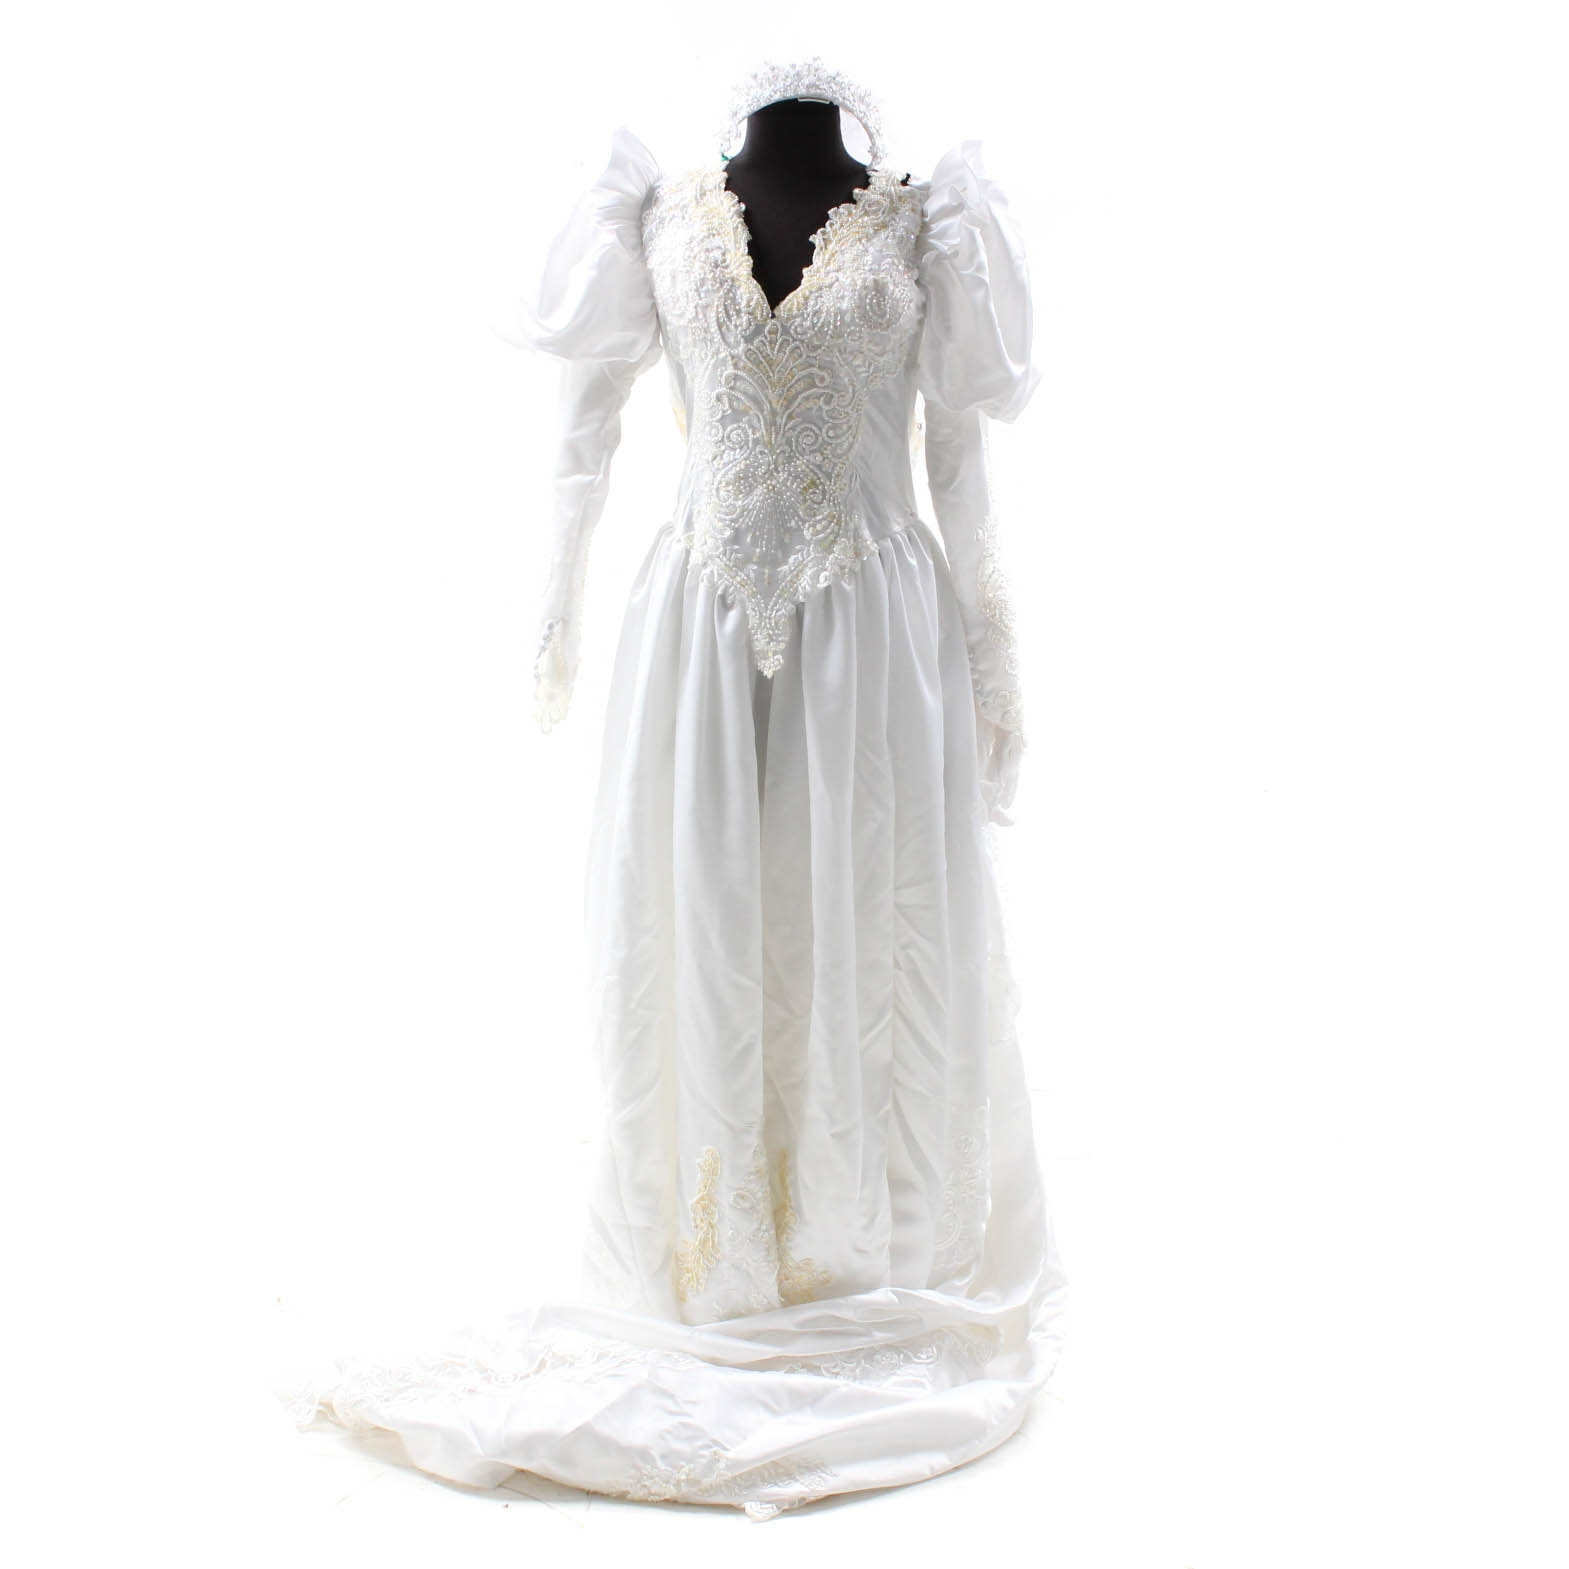 Vintage Beaded Wedding Gown with Veil